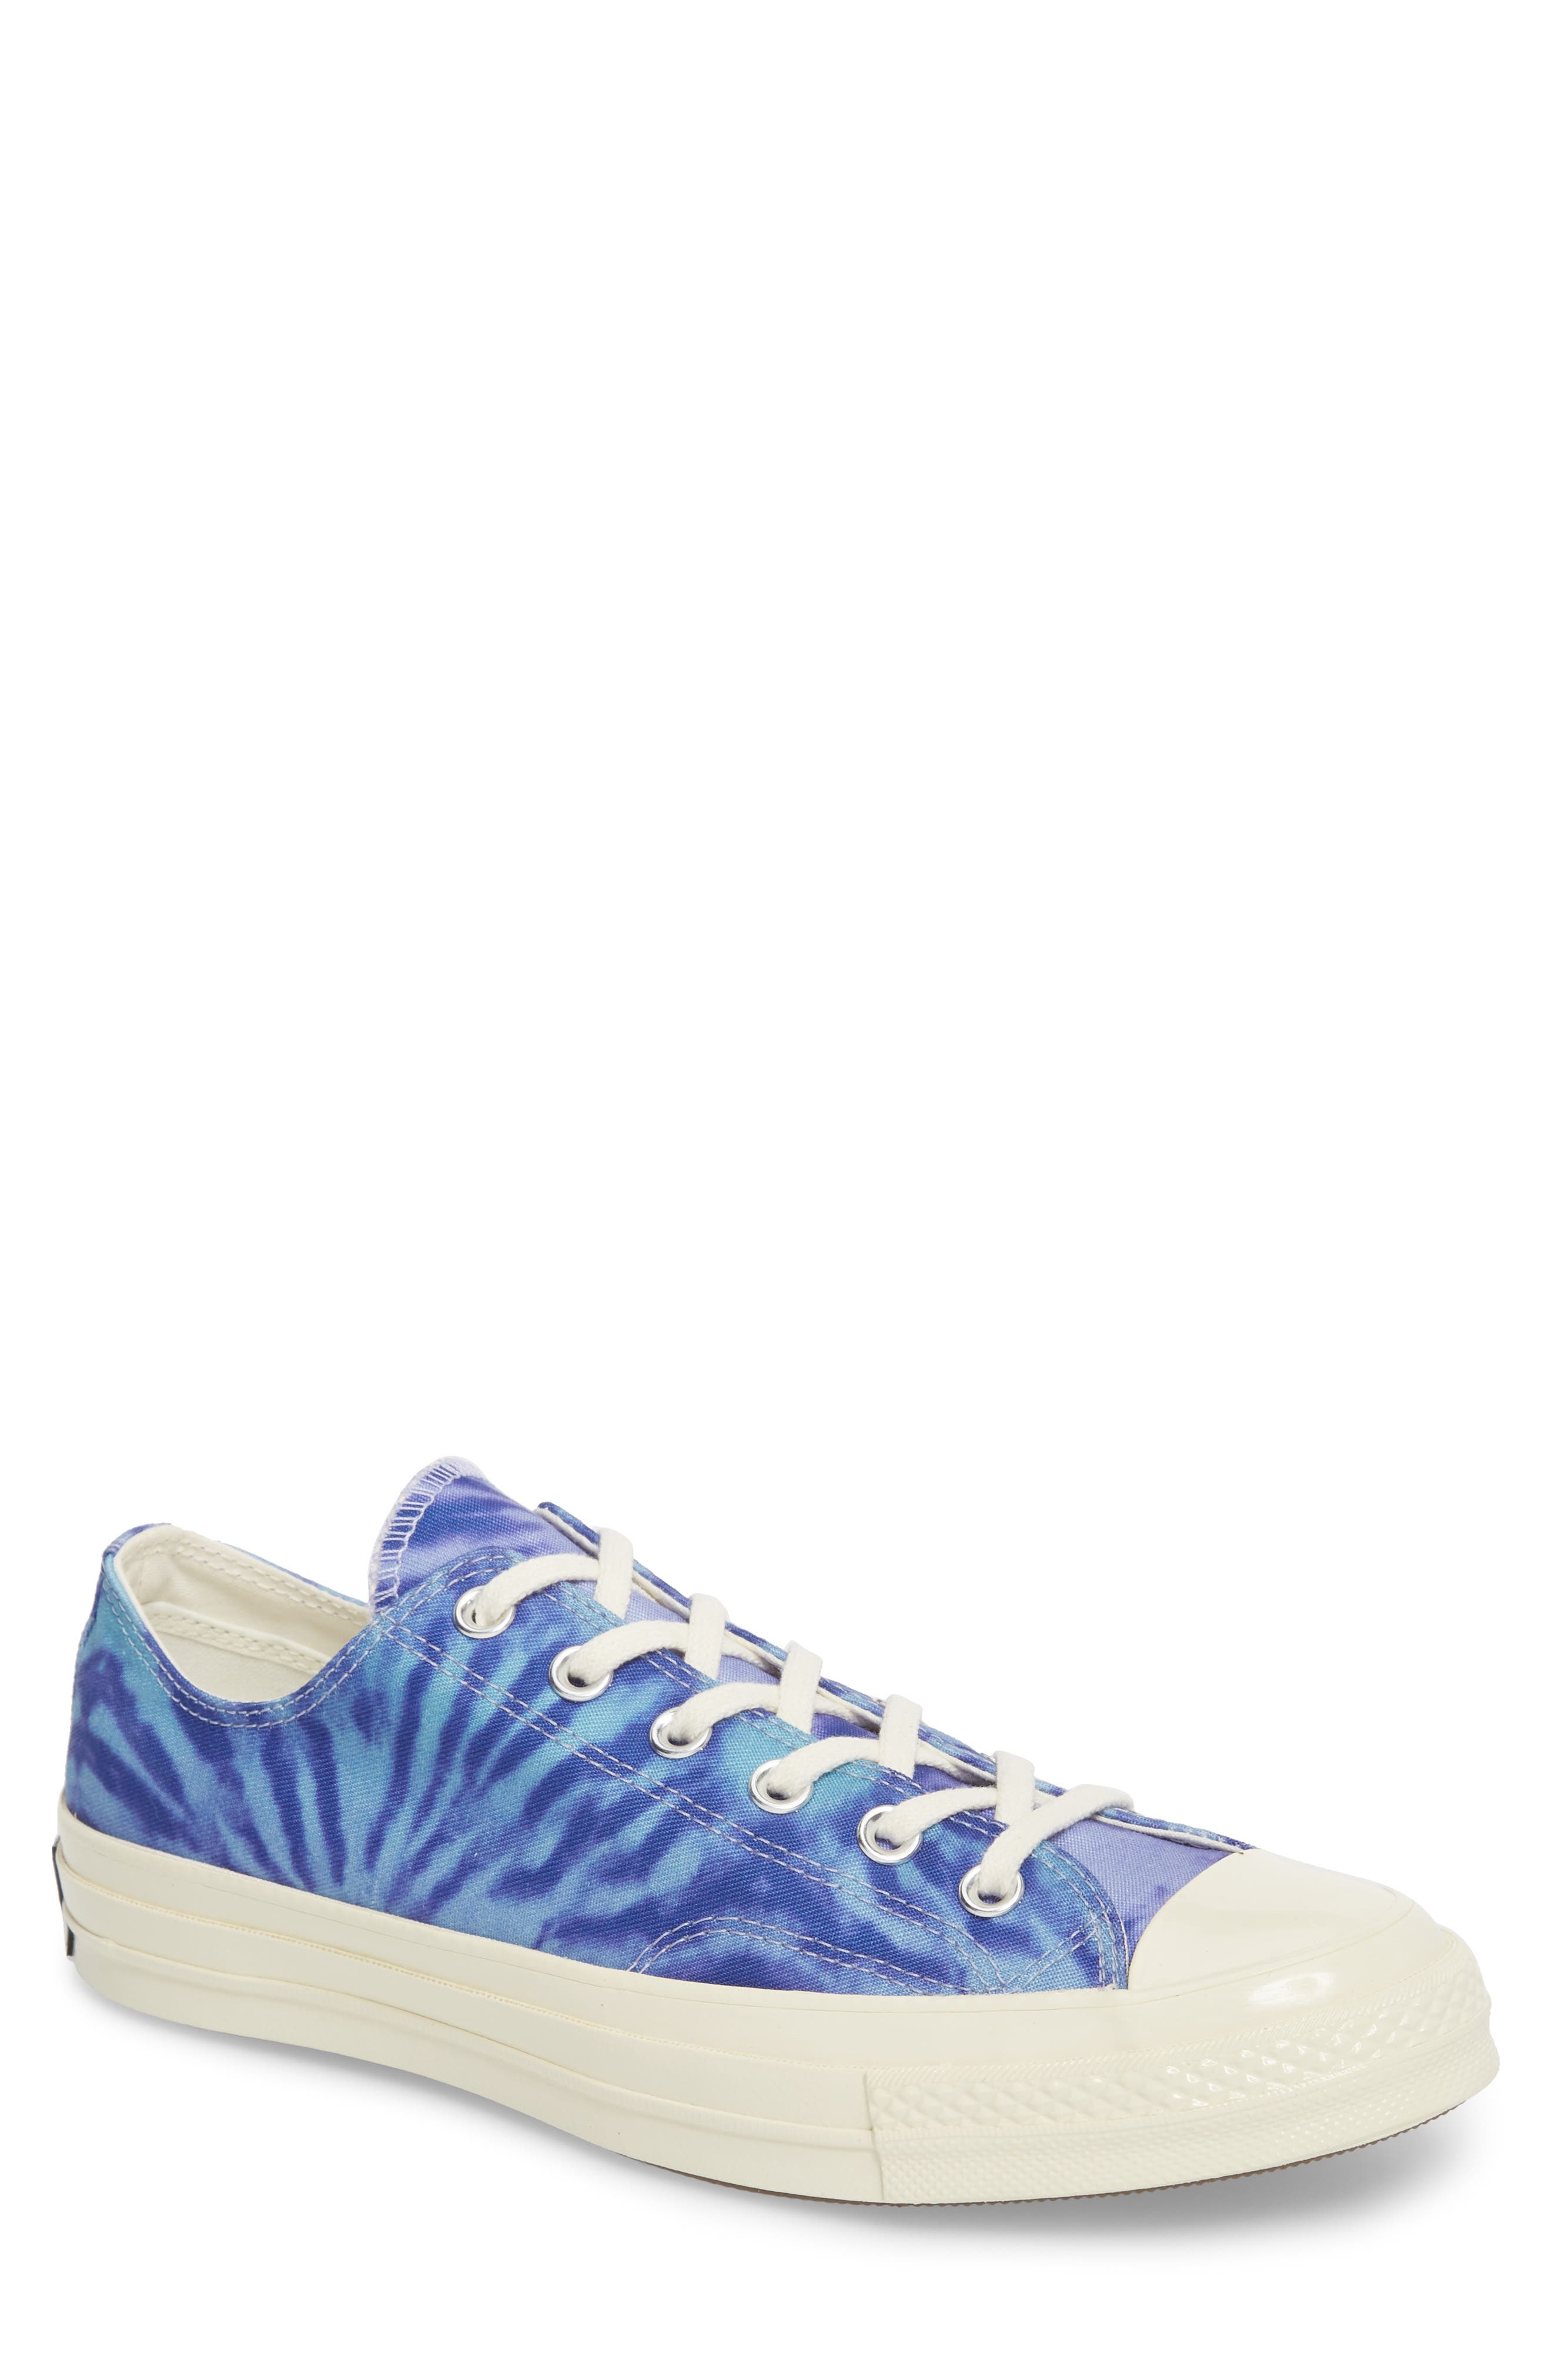 Chuck Taylor<sup>®</sup> All Star<sup>®</sup> 70 Tie Dye Low Top Sneaker,                             Main thumbnail 1, color,                             Shoreline Blue